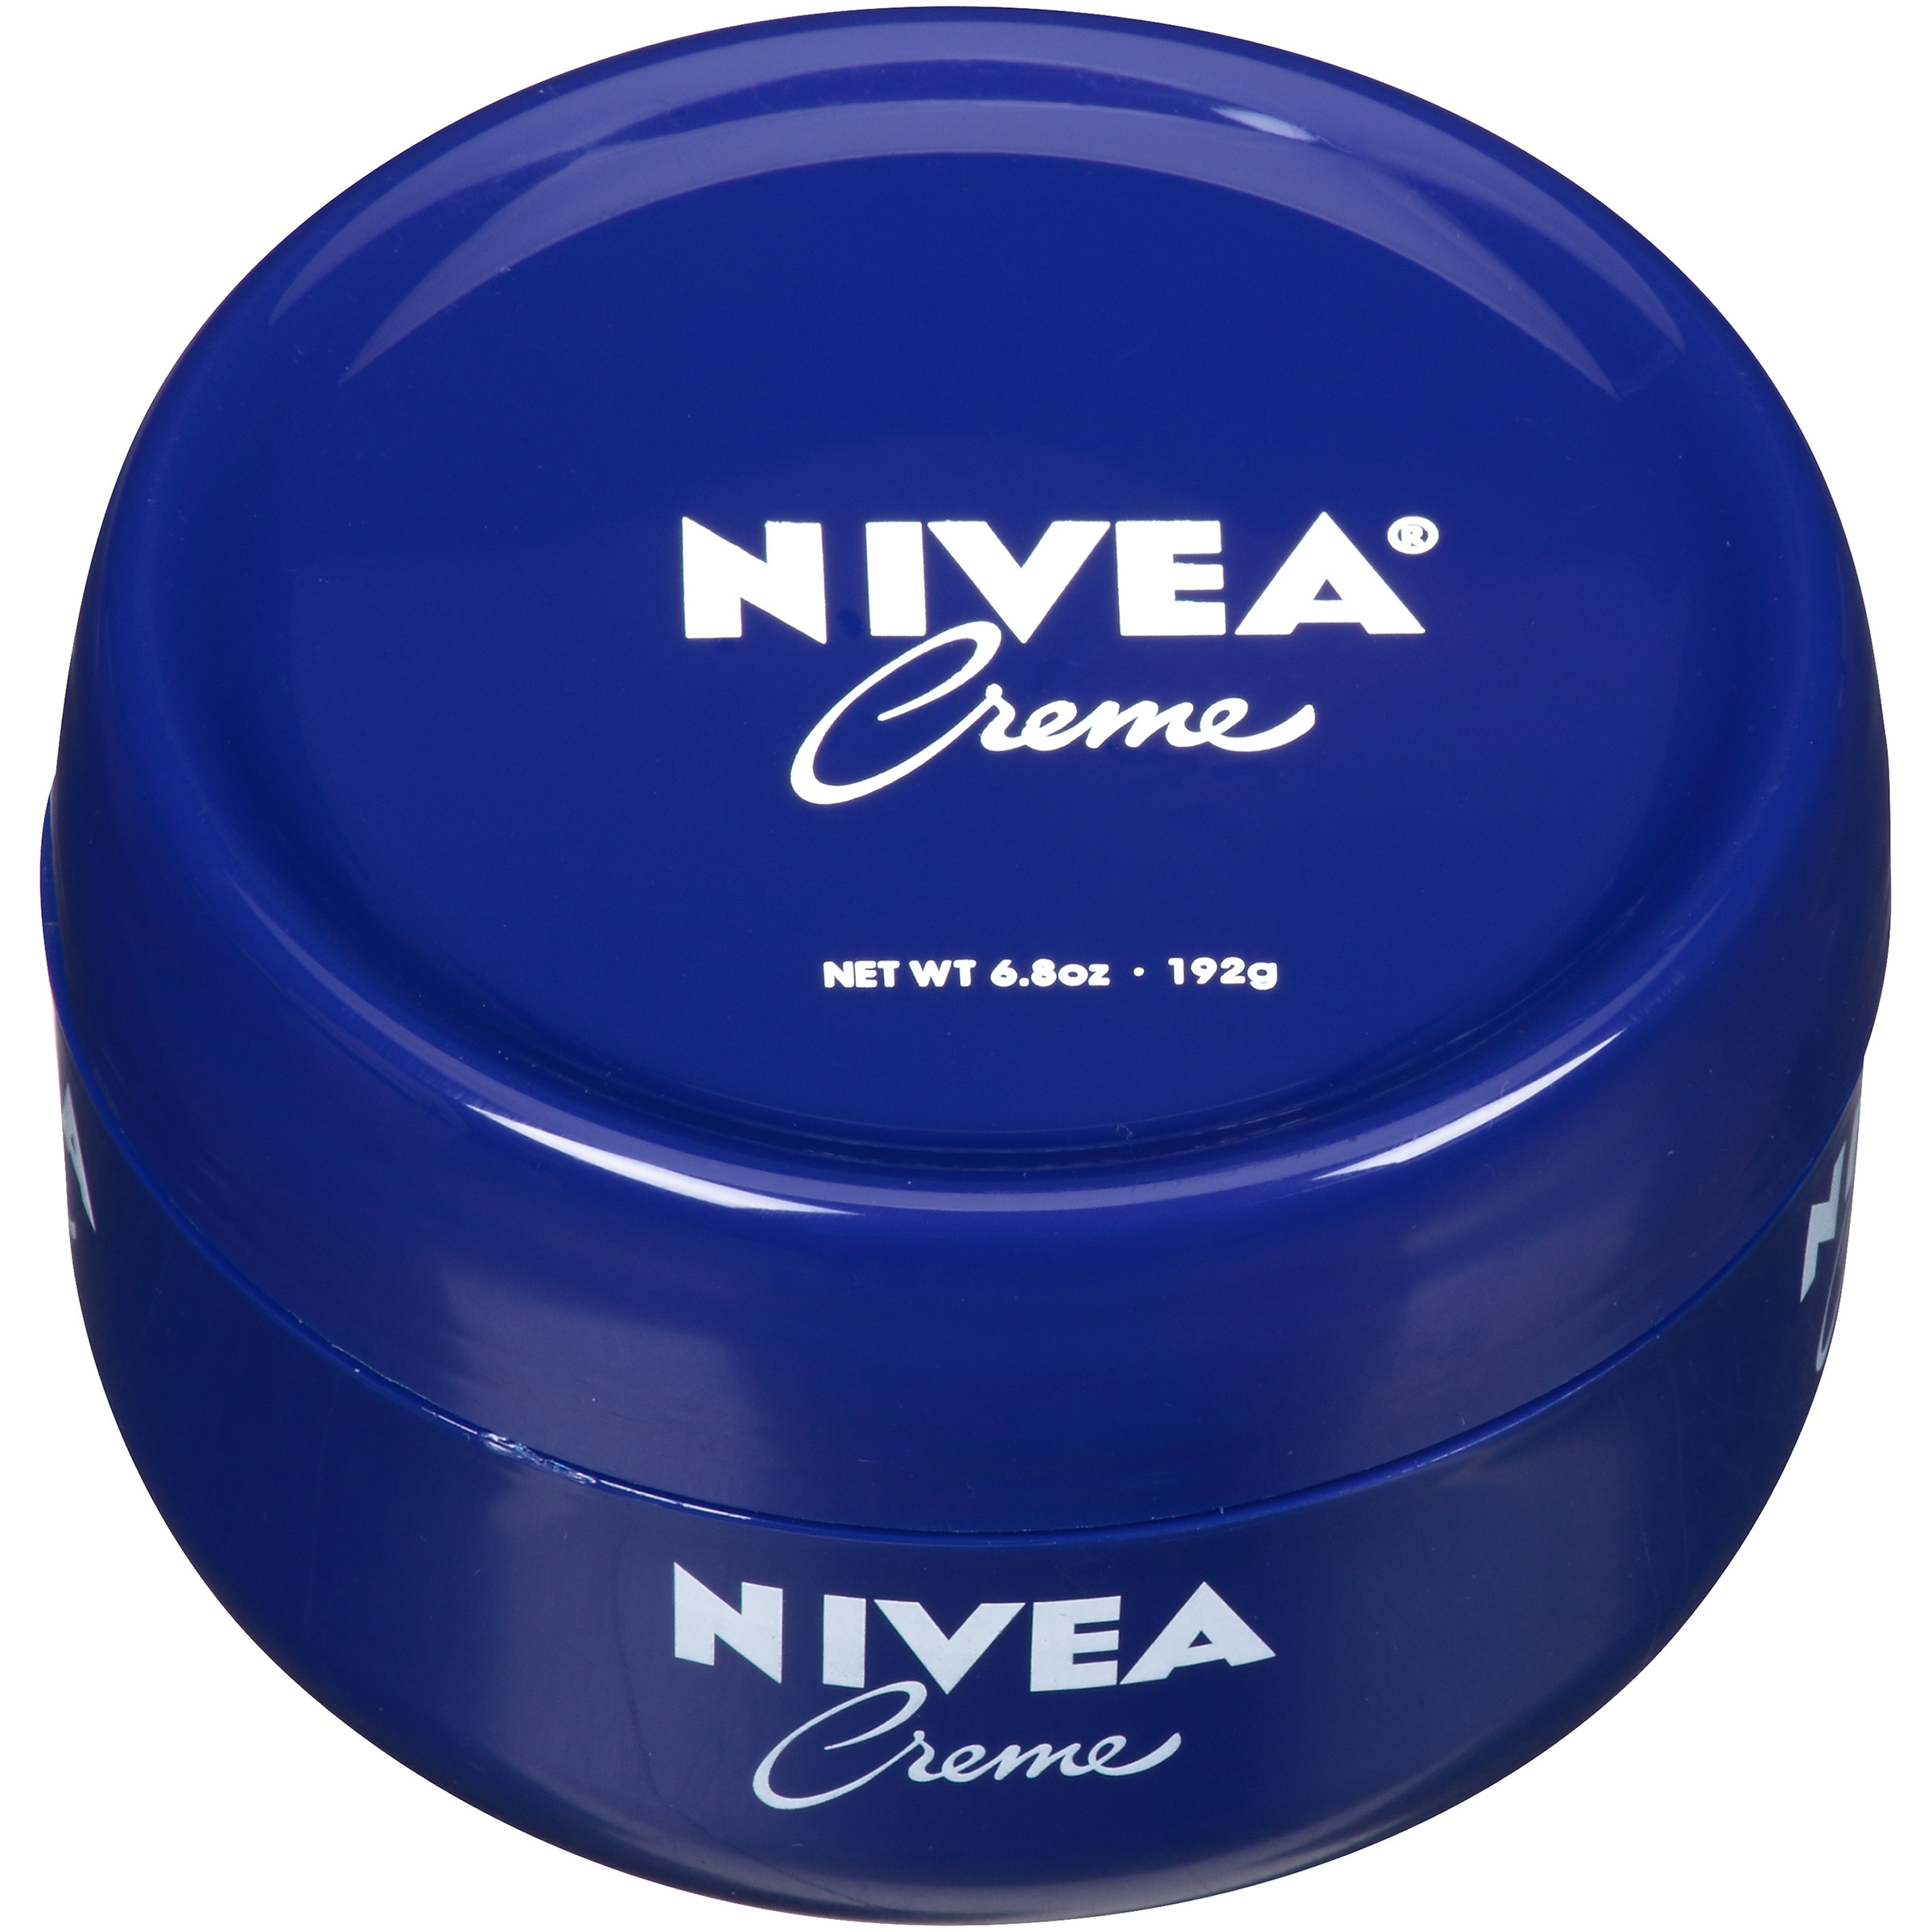 facial cream nivea